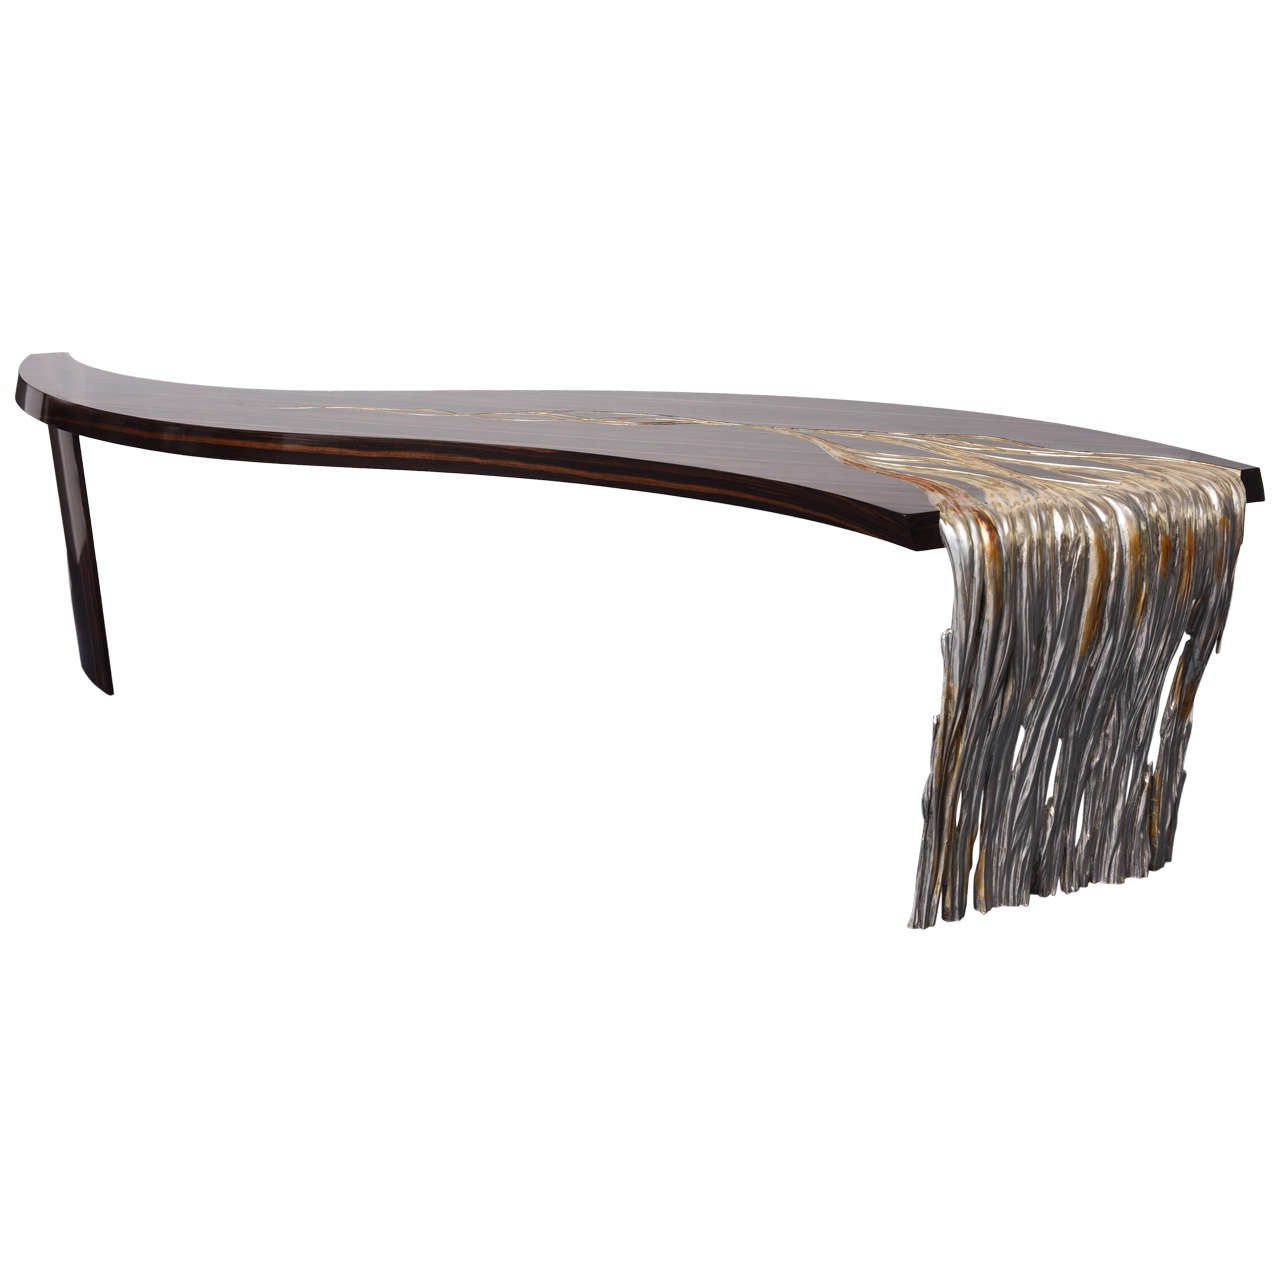 1st Dibs 1st dibs 10 Incredible Modern Console Tables on 1st Dibs X